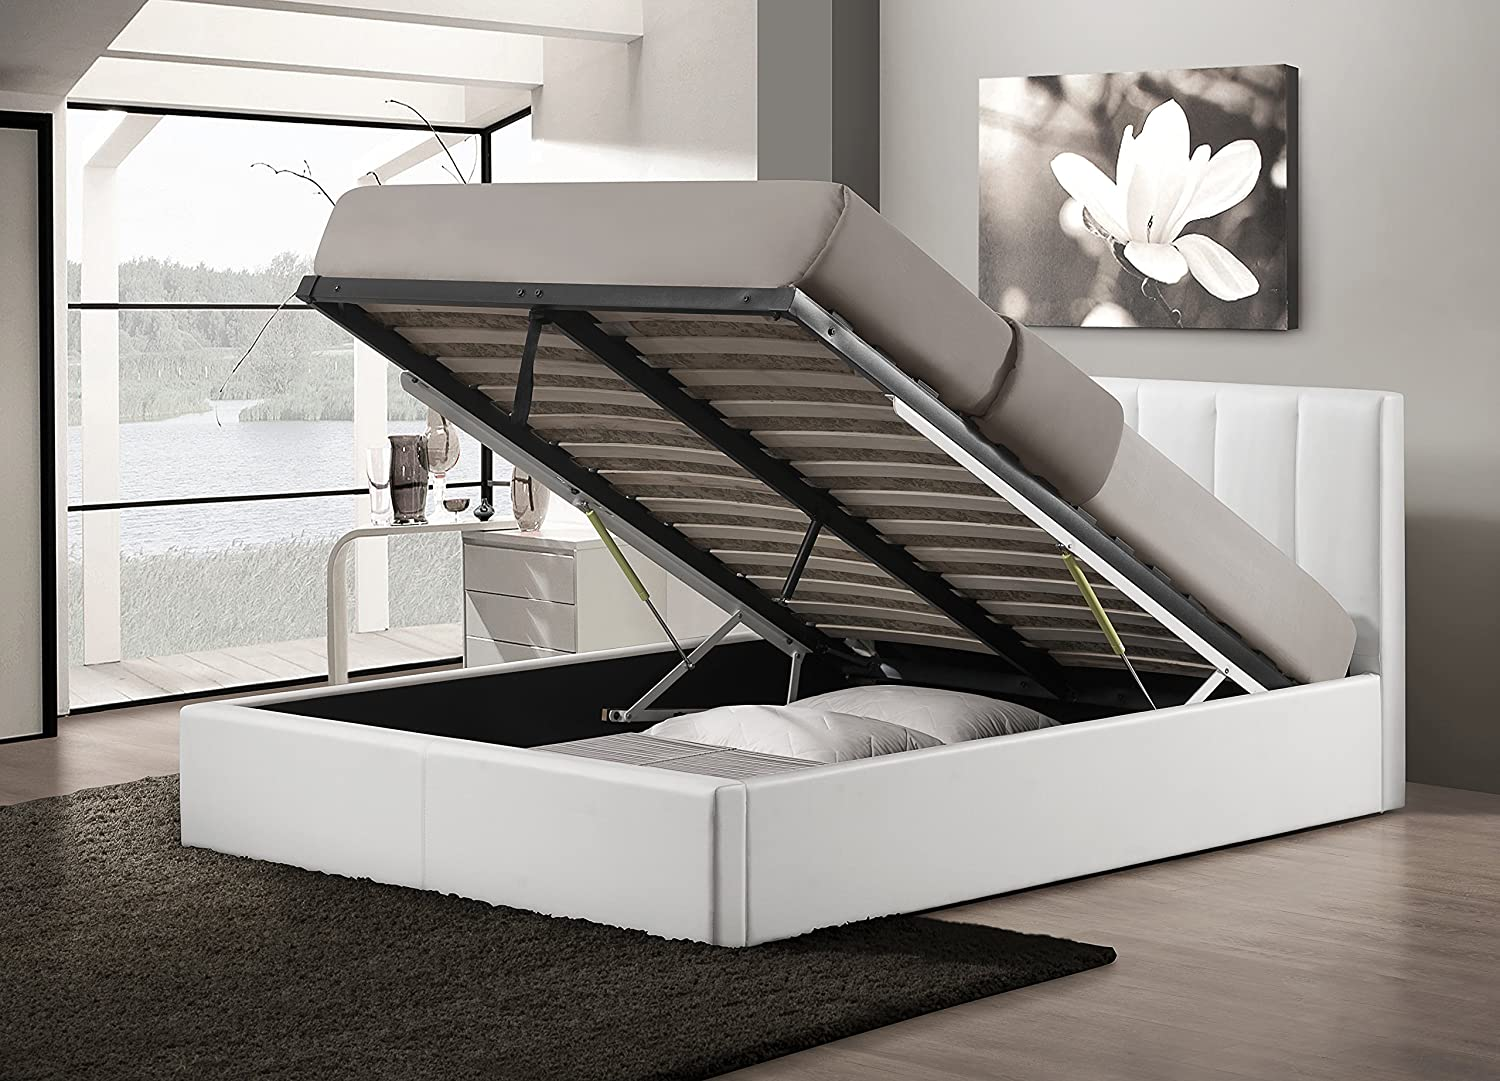 Amazon.com Baxton Studio Templemore White Leather Contemporary Bed Queen Kitchen u0026 Dining & Amazon.com: Baxton Studio Templemore White Leather Contemporary Bed ...